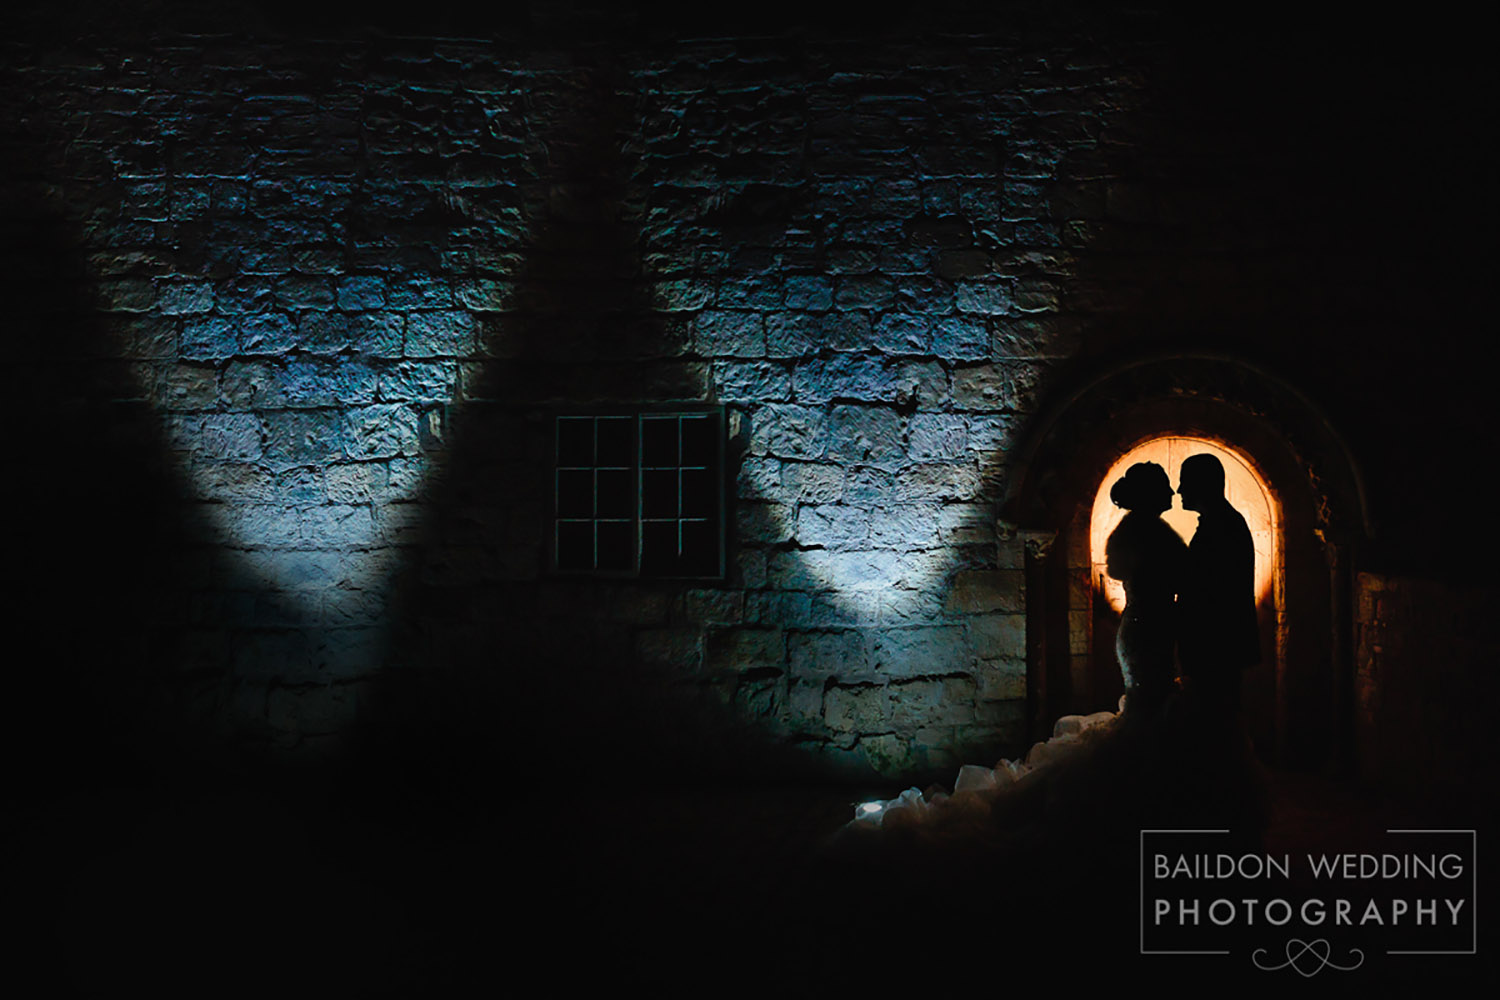 Priory Cottages wedding photograph Leeds at night